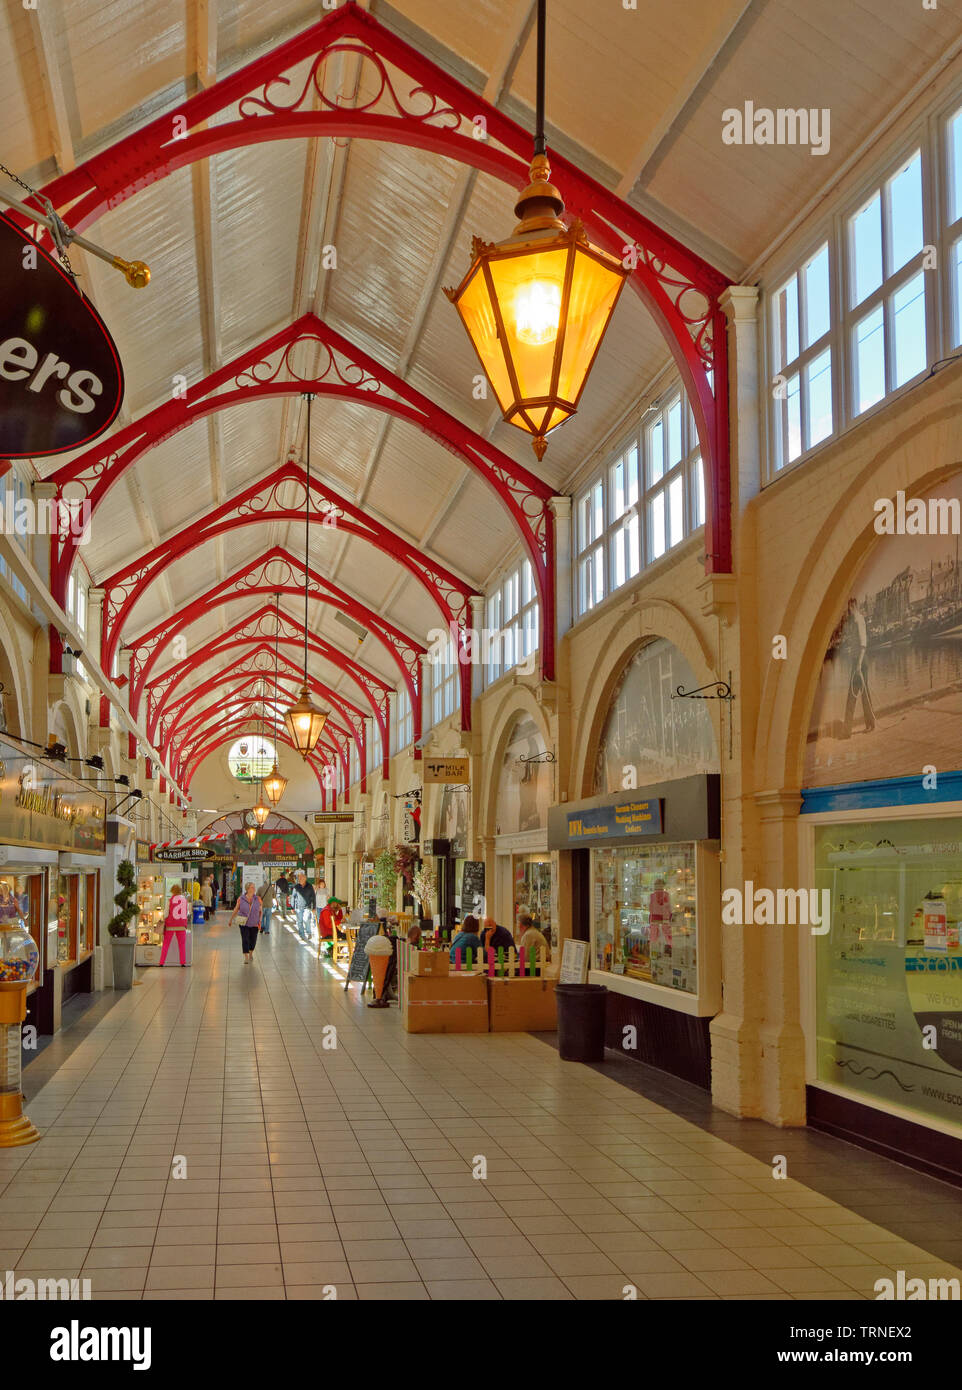 INVERNESS CITY SCOTLAND CENTRAL CITY THE INTERIOR OF THE VICTORIAN COVERED MARKET - Stock Image